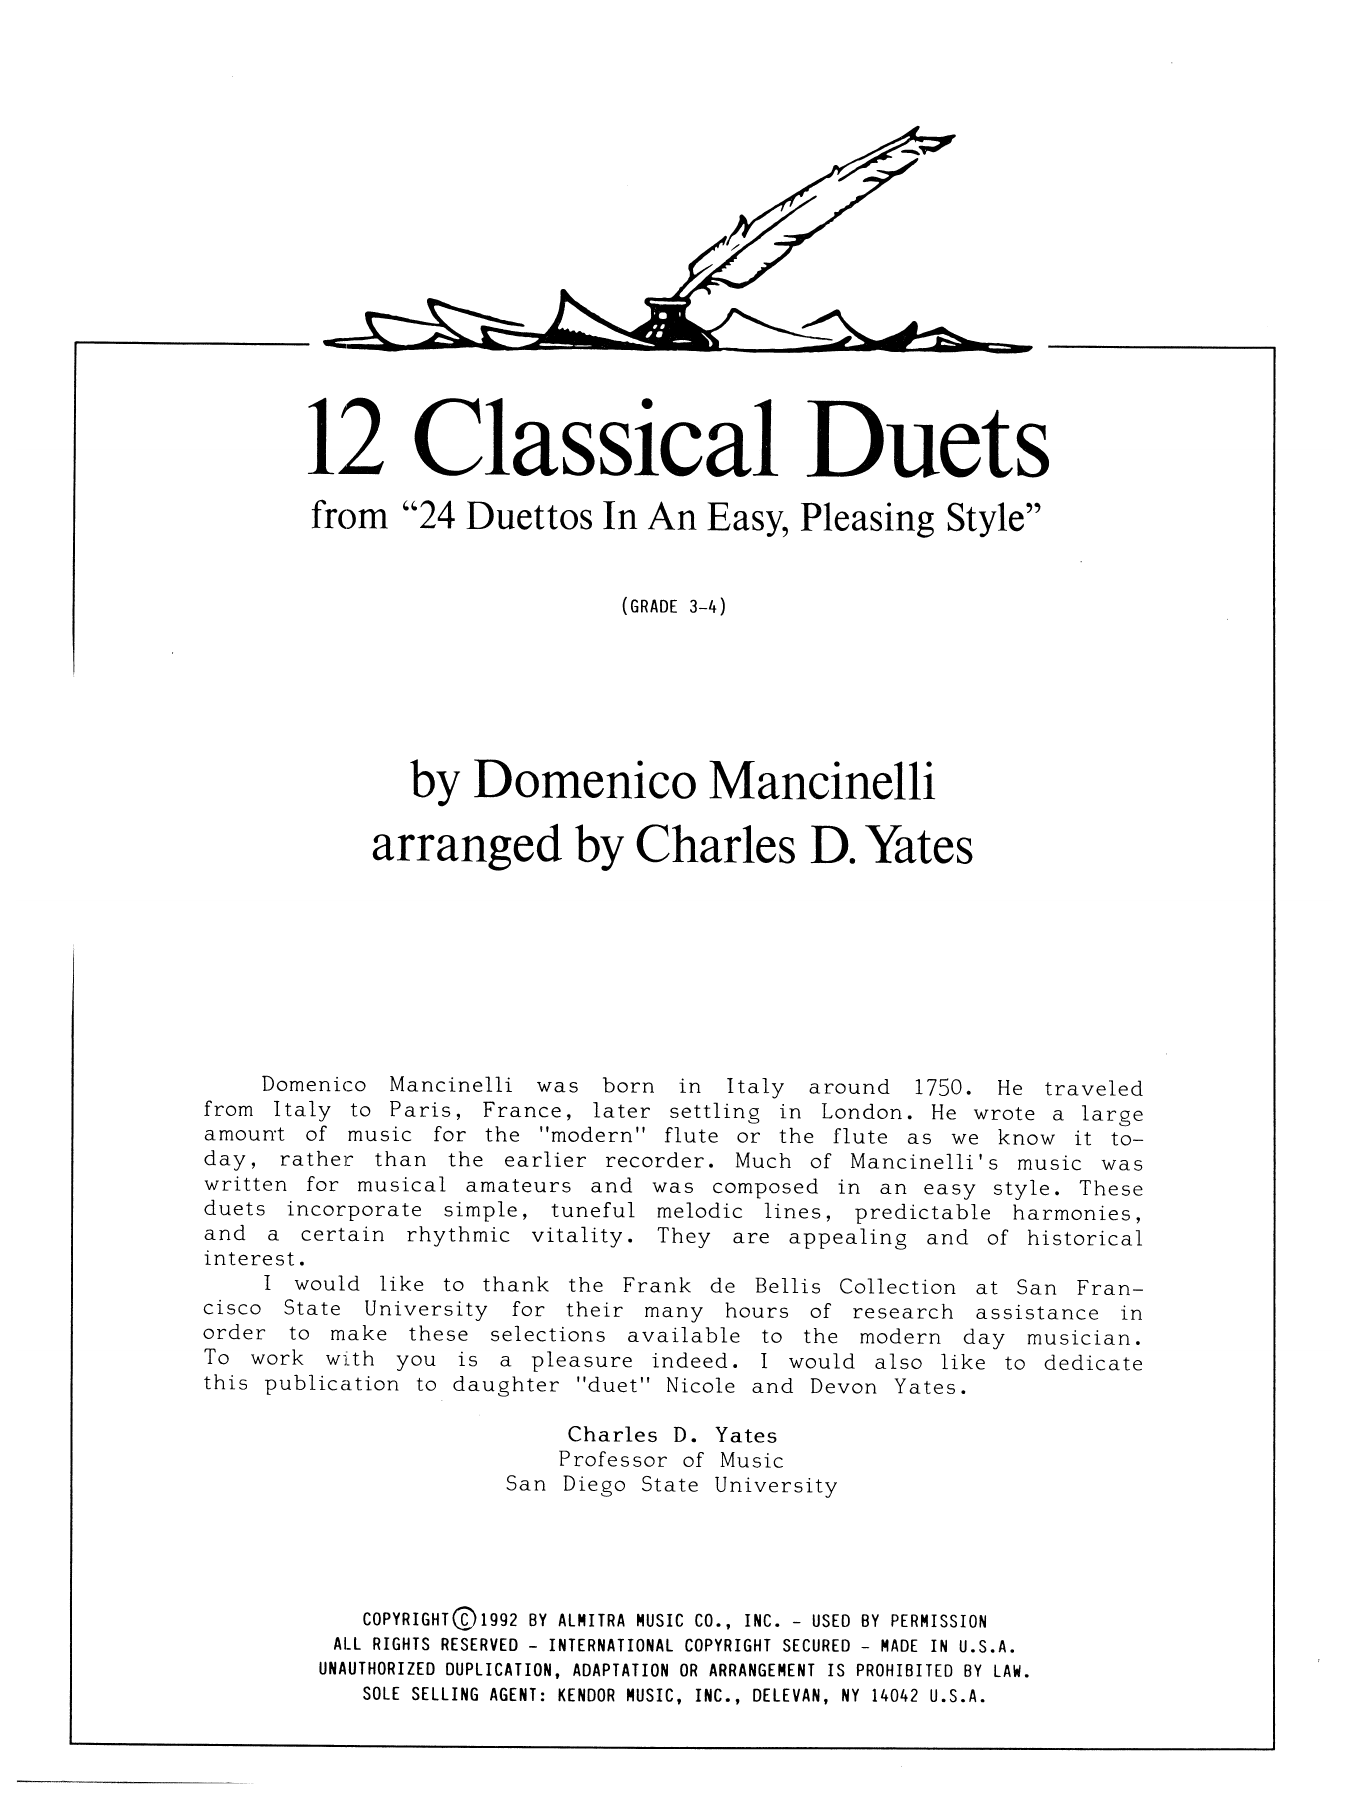 12 Classics Duets (from 24 Duettos In An Easy, Pleasing Style) Sheet Music